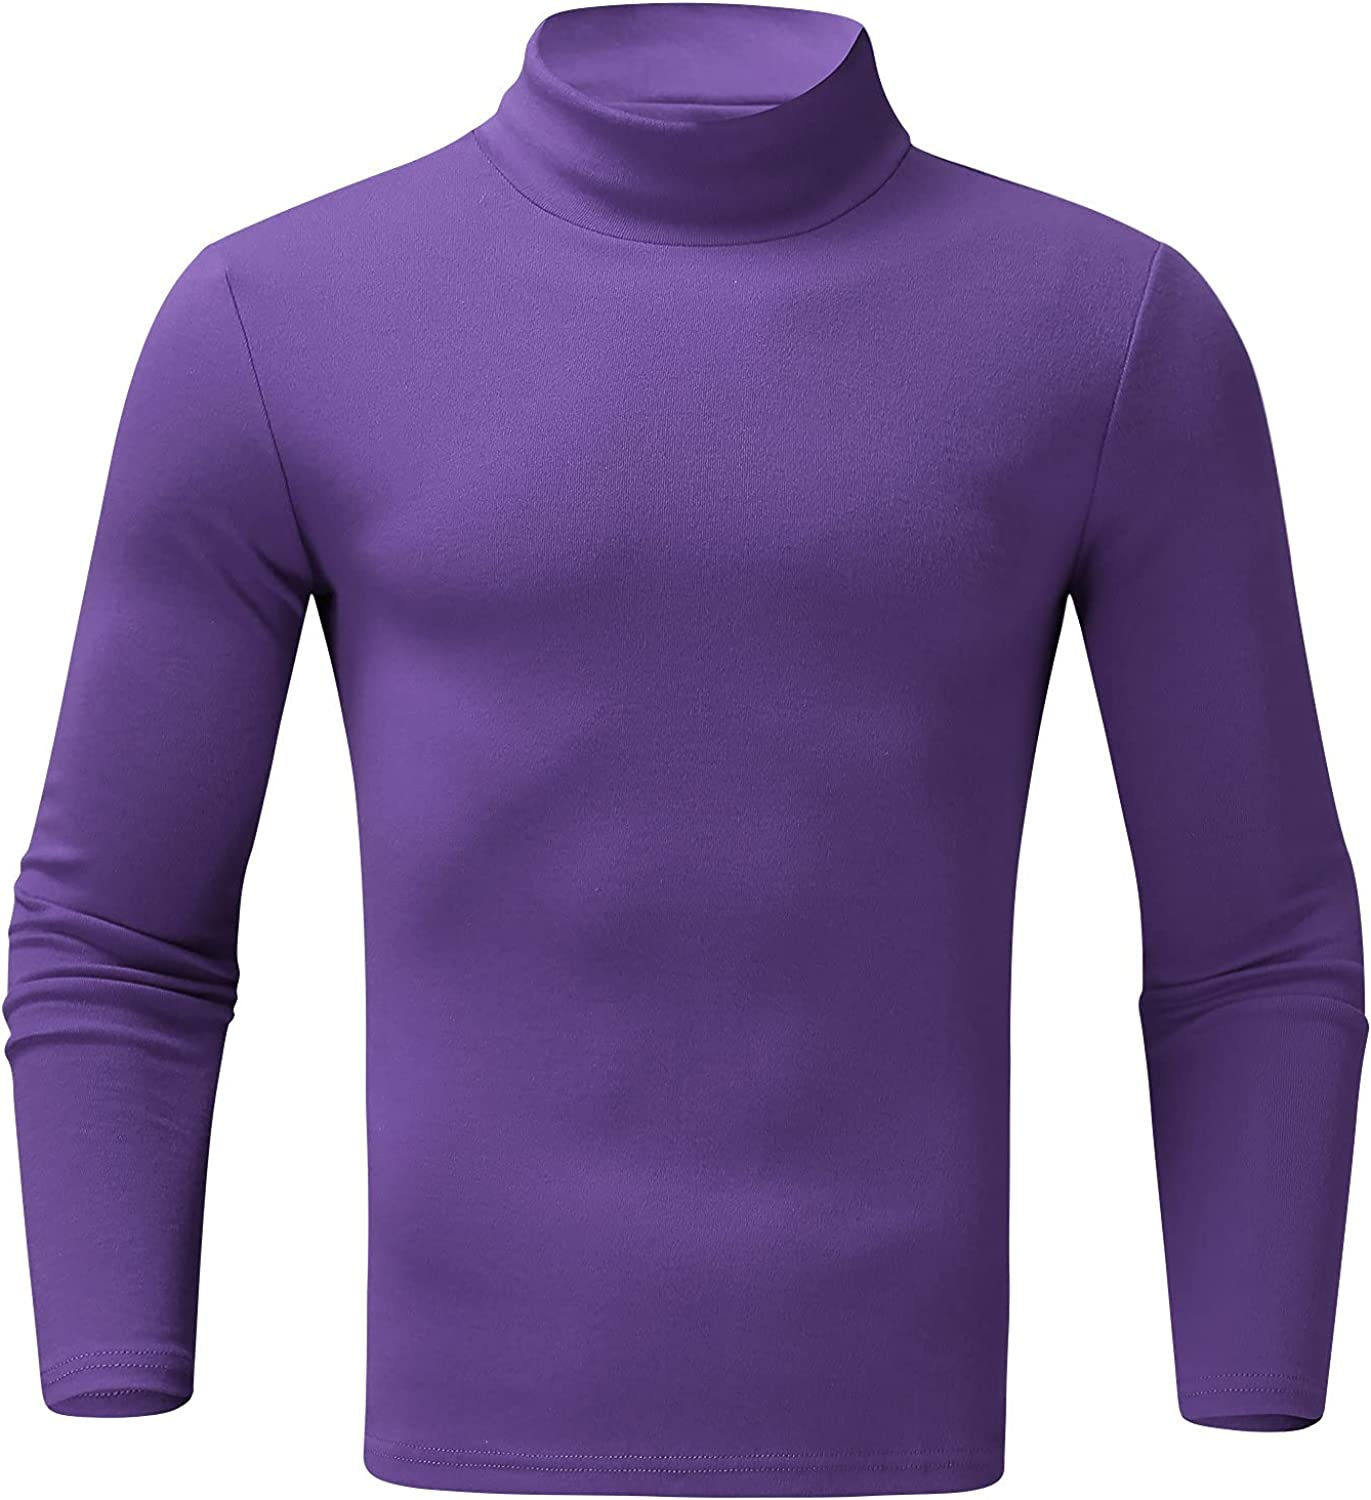 Mens Casual Slim Fit Turtleneck Thermal Baselayers Shirts Lightweight Casual Long Sleeve T Shirts Pullover Sweaters